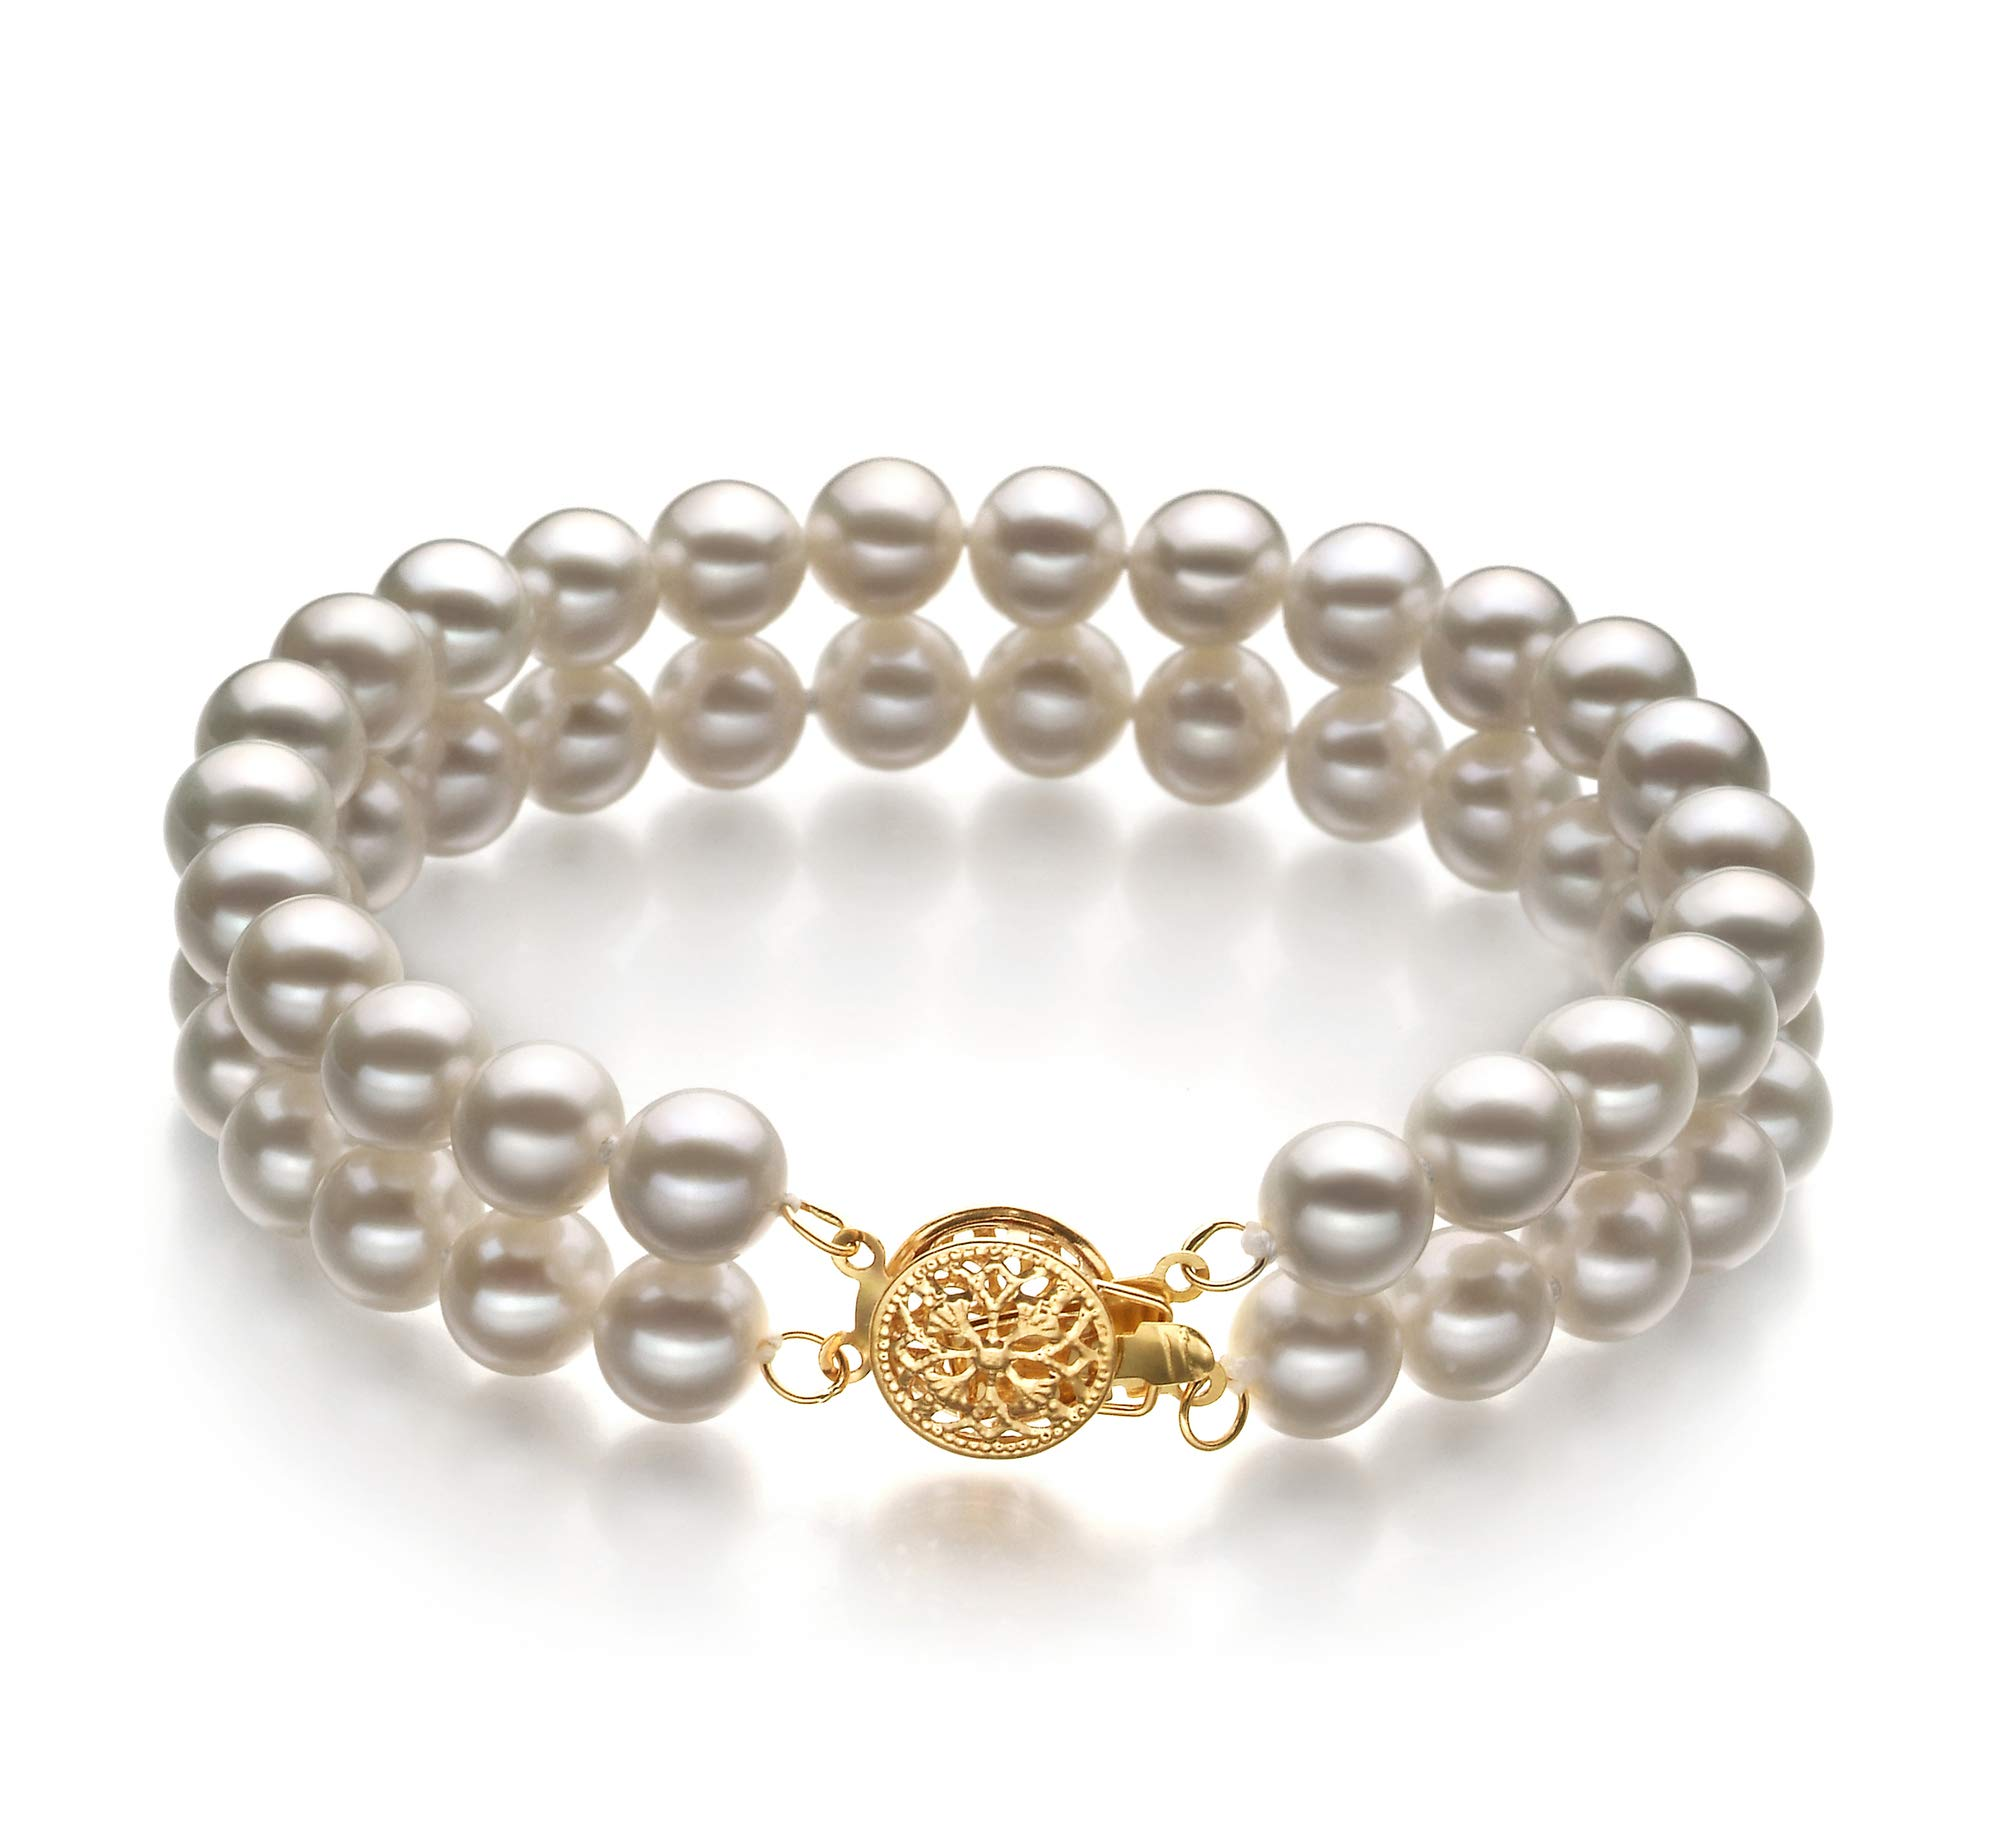 Lola White 6-7mm Double Strand AA Quality Freshwater Gold filled Cultured Pearl Bracelet For Women